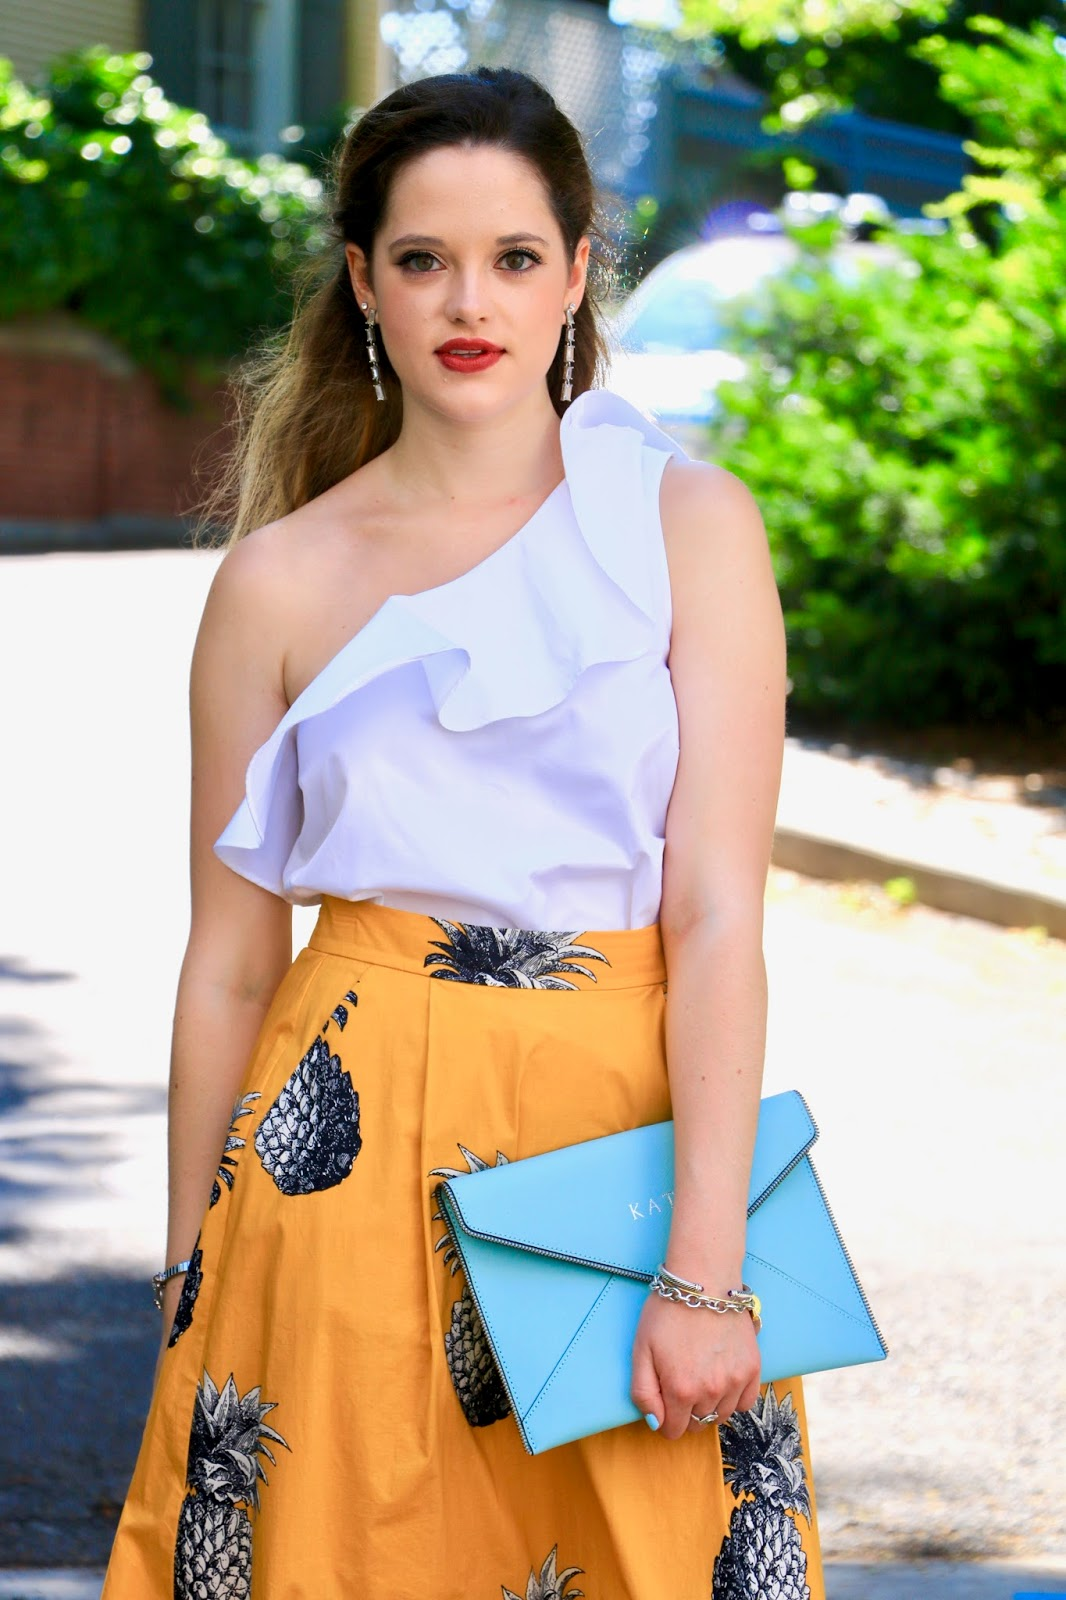 nyc fashion blogger Kathleen Harper showing summer beauty/makeup trends